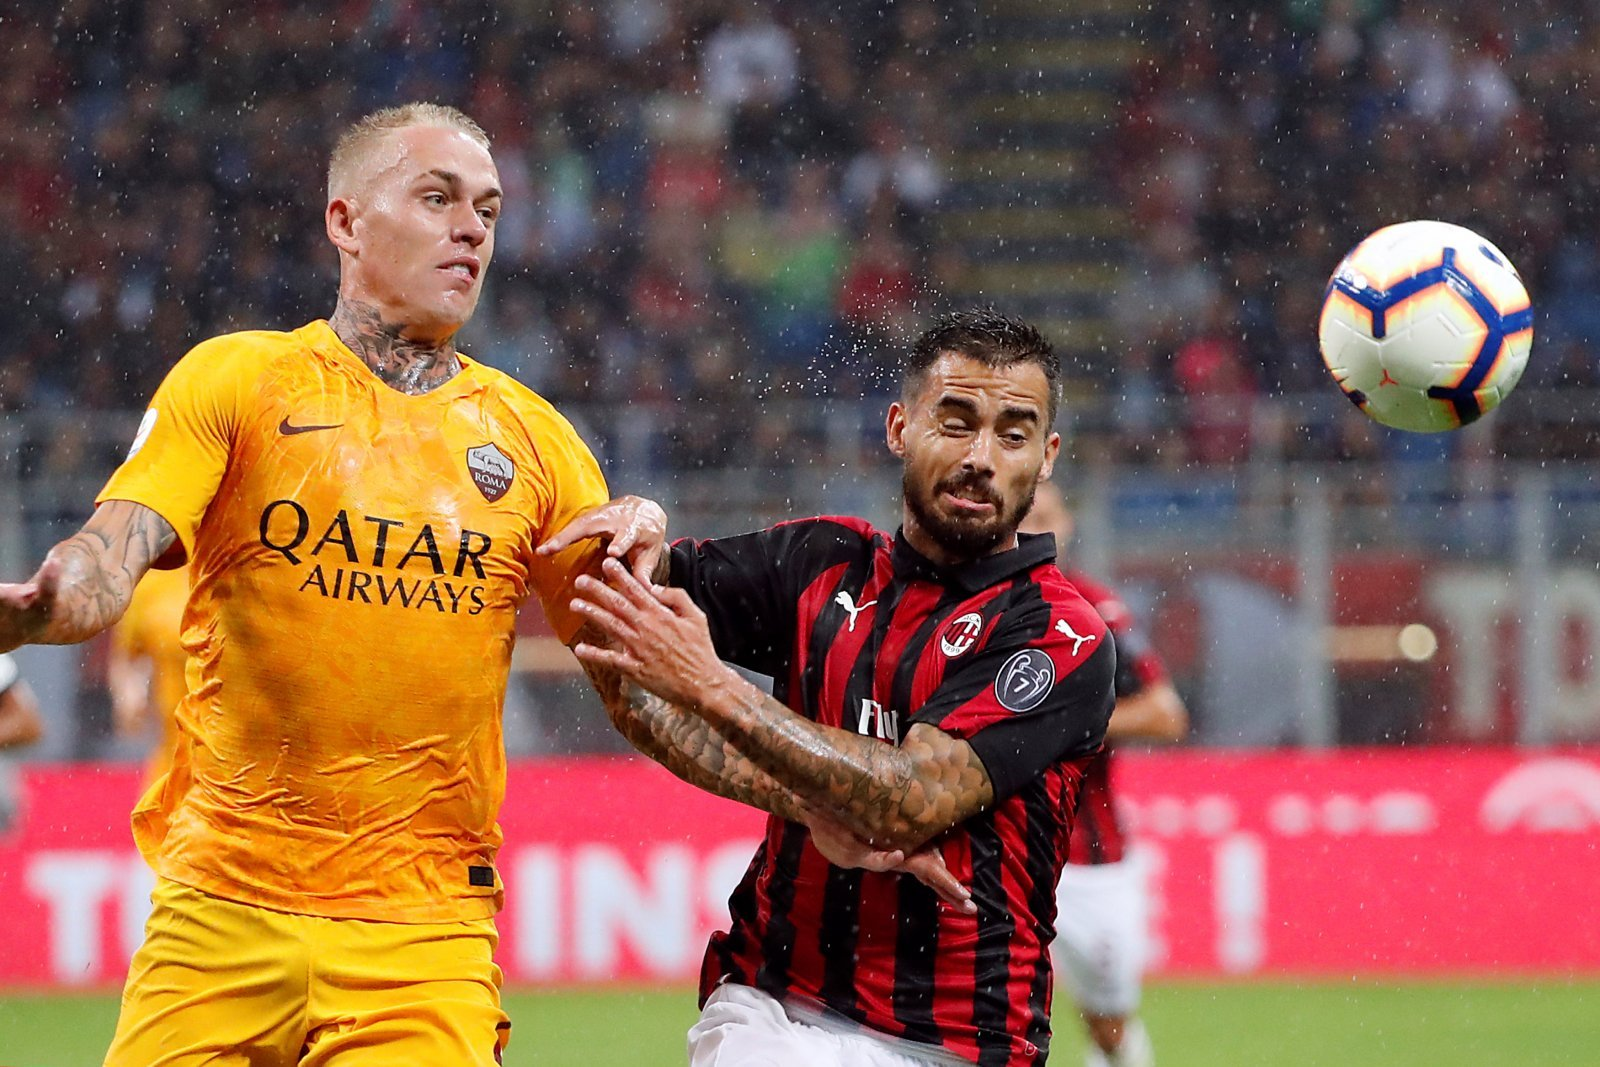 Suso the kind of signing to take Tottenham to the next level